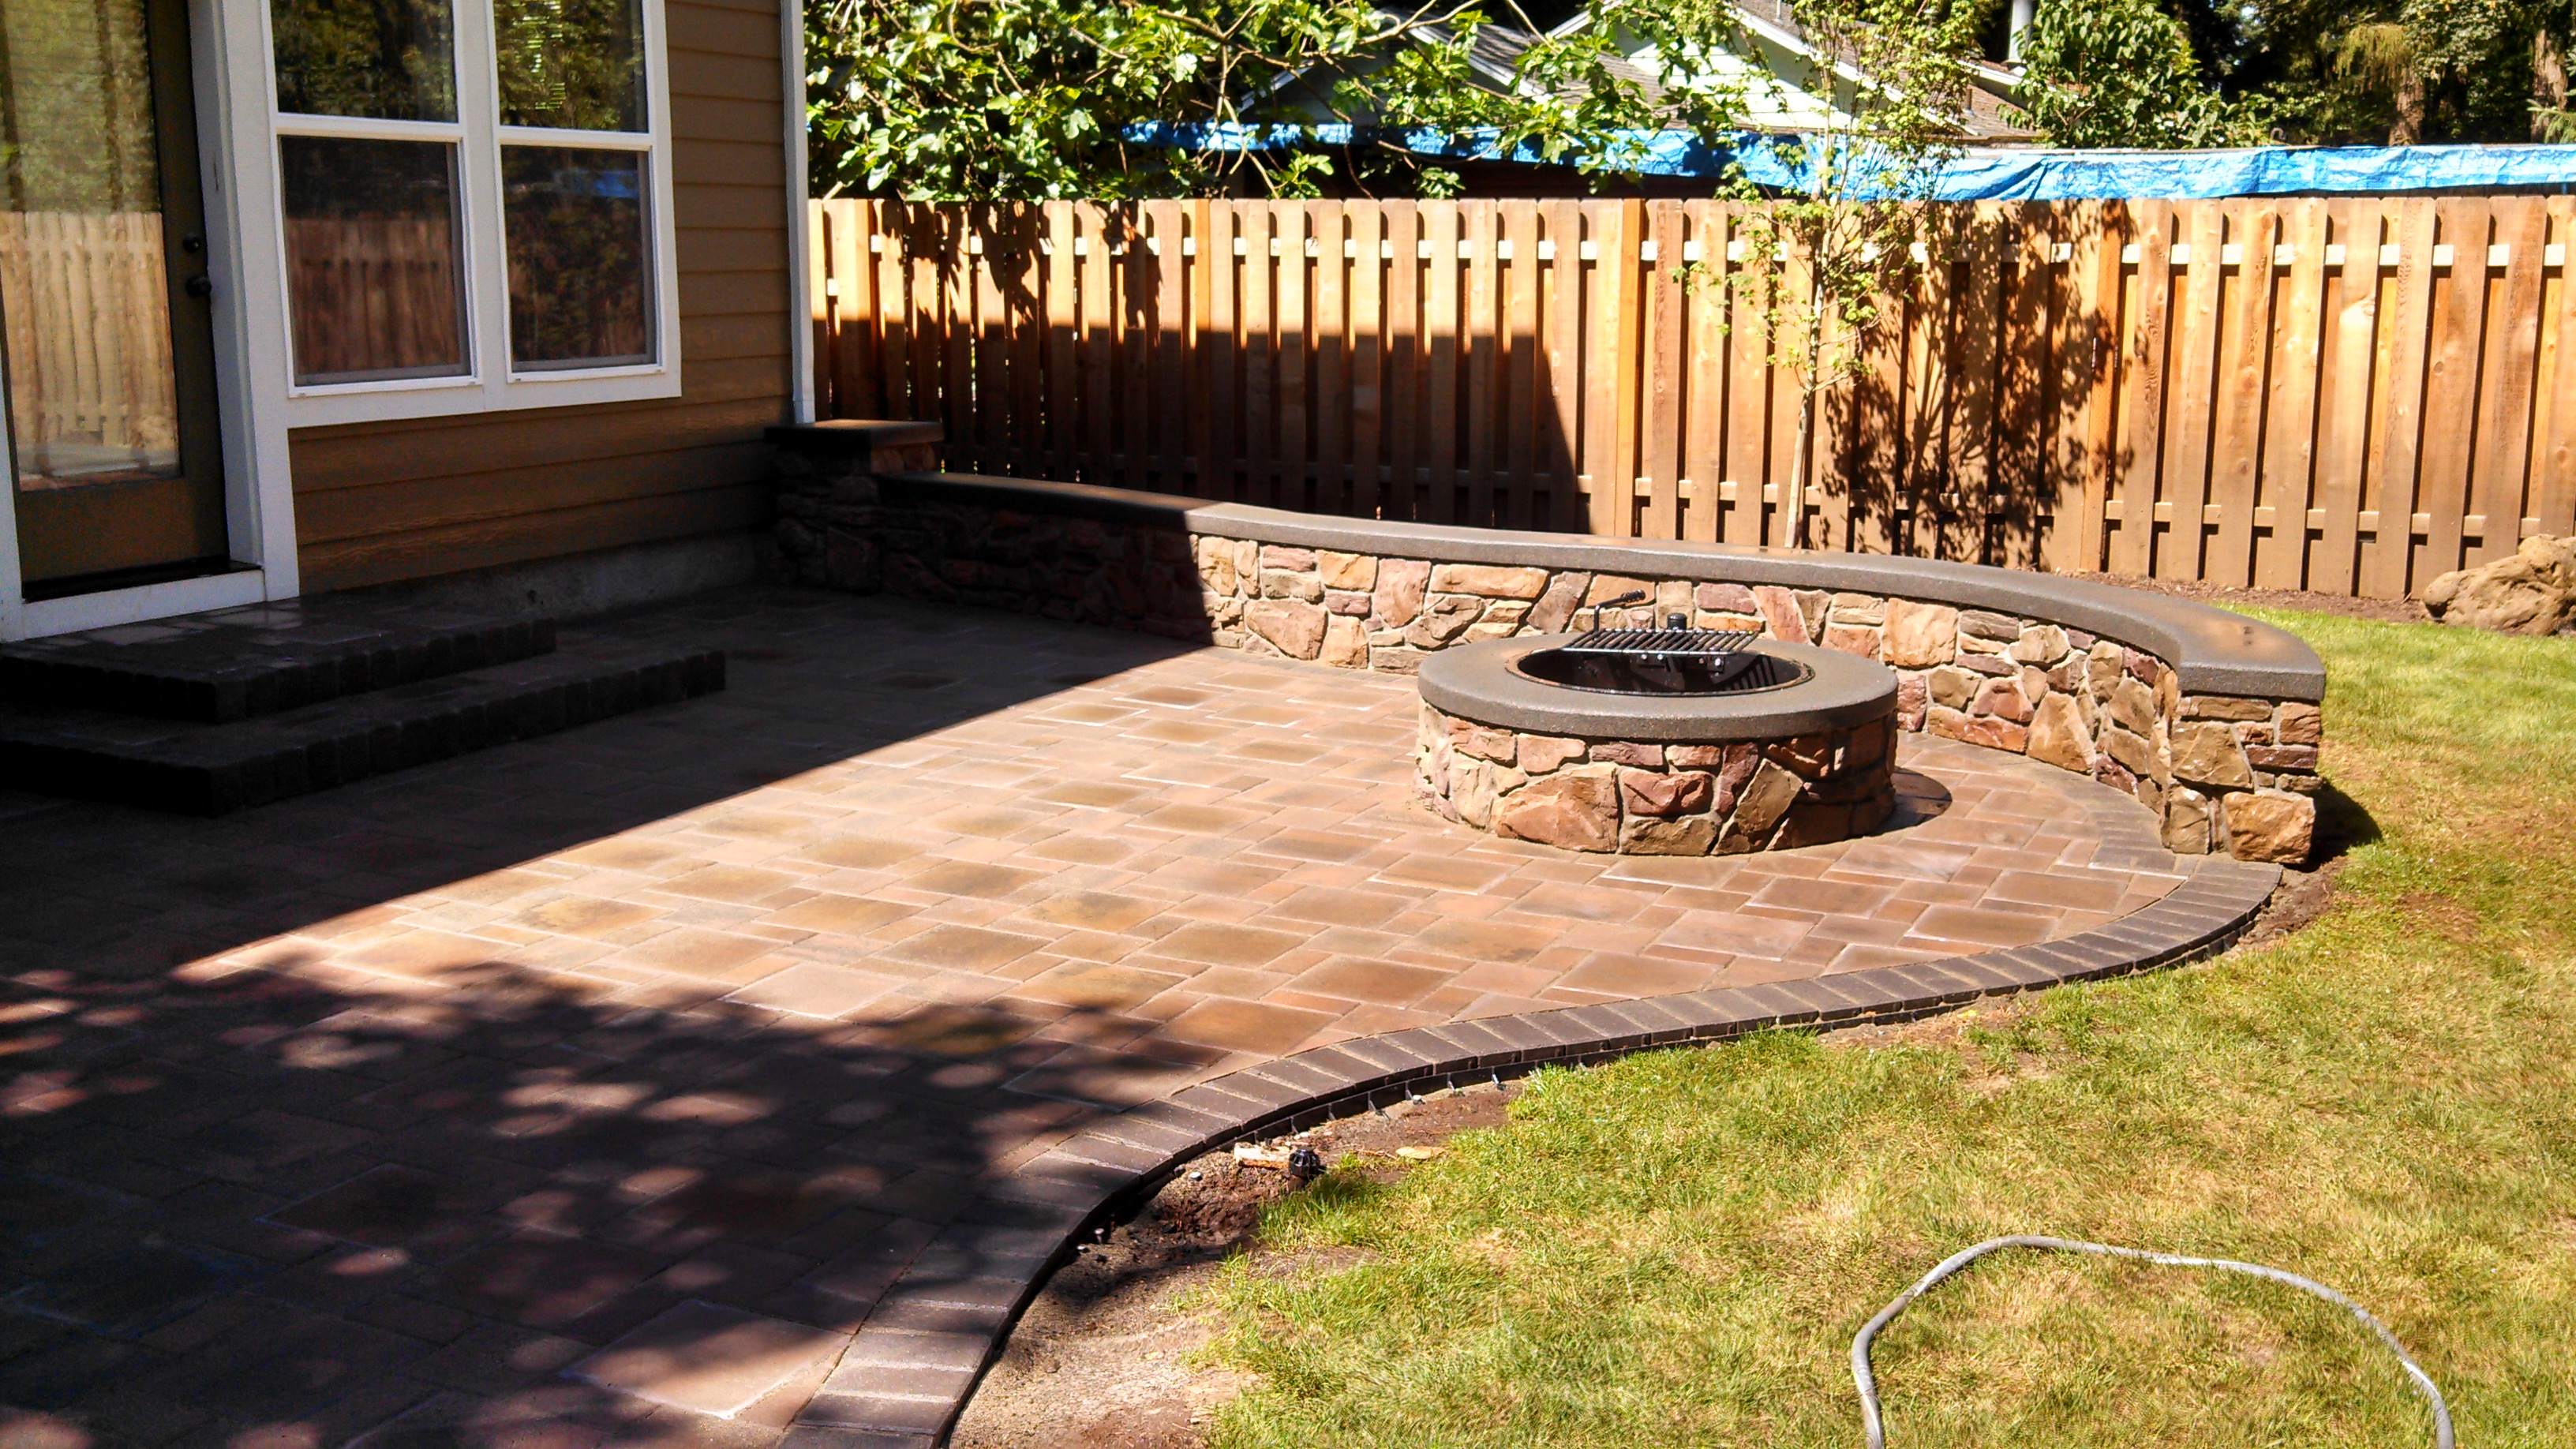 randy mckee masonry is your hardscape patio contractor in portland and